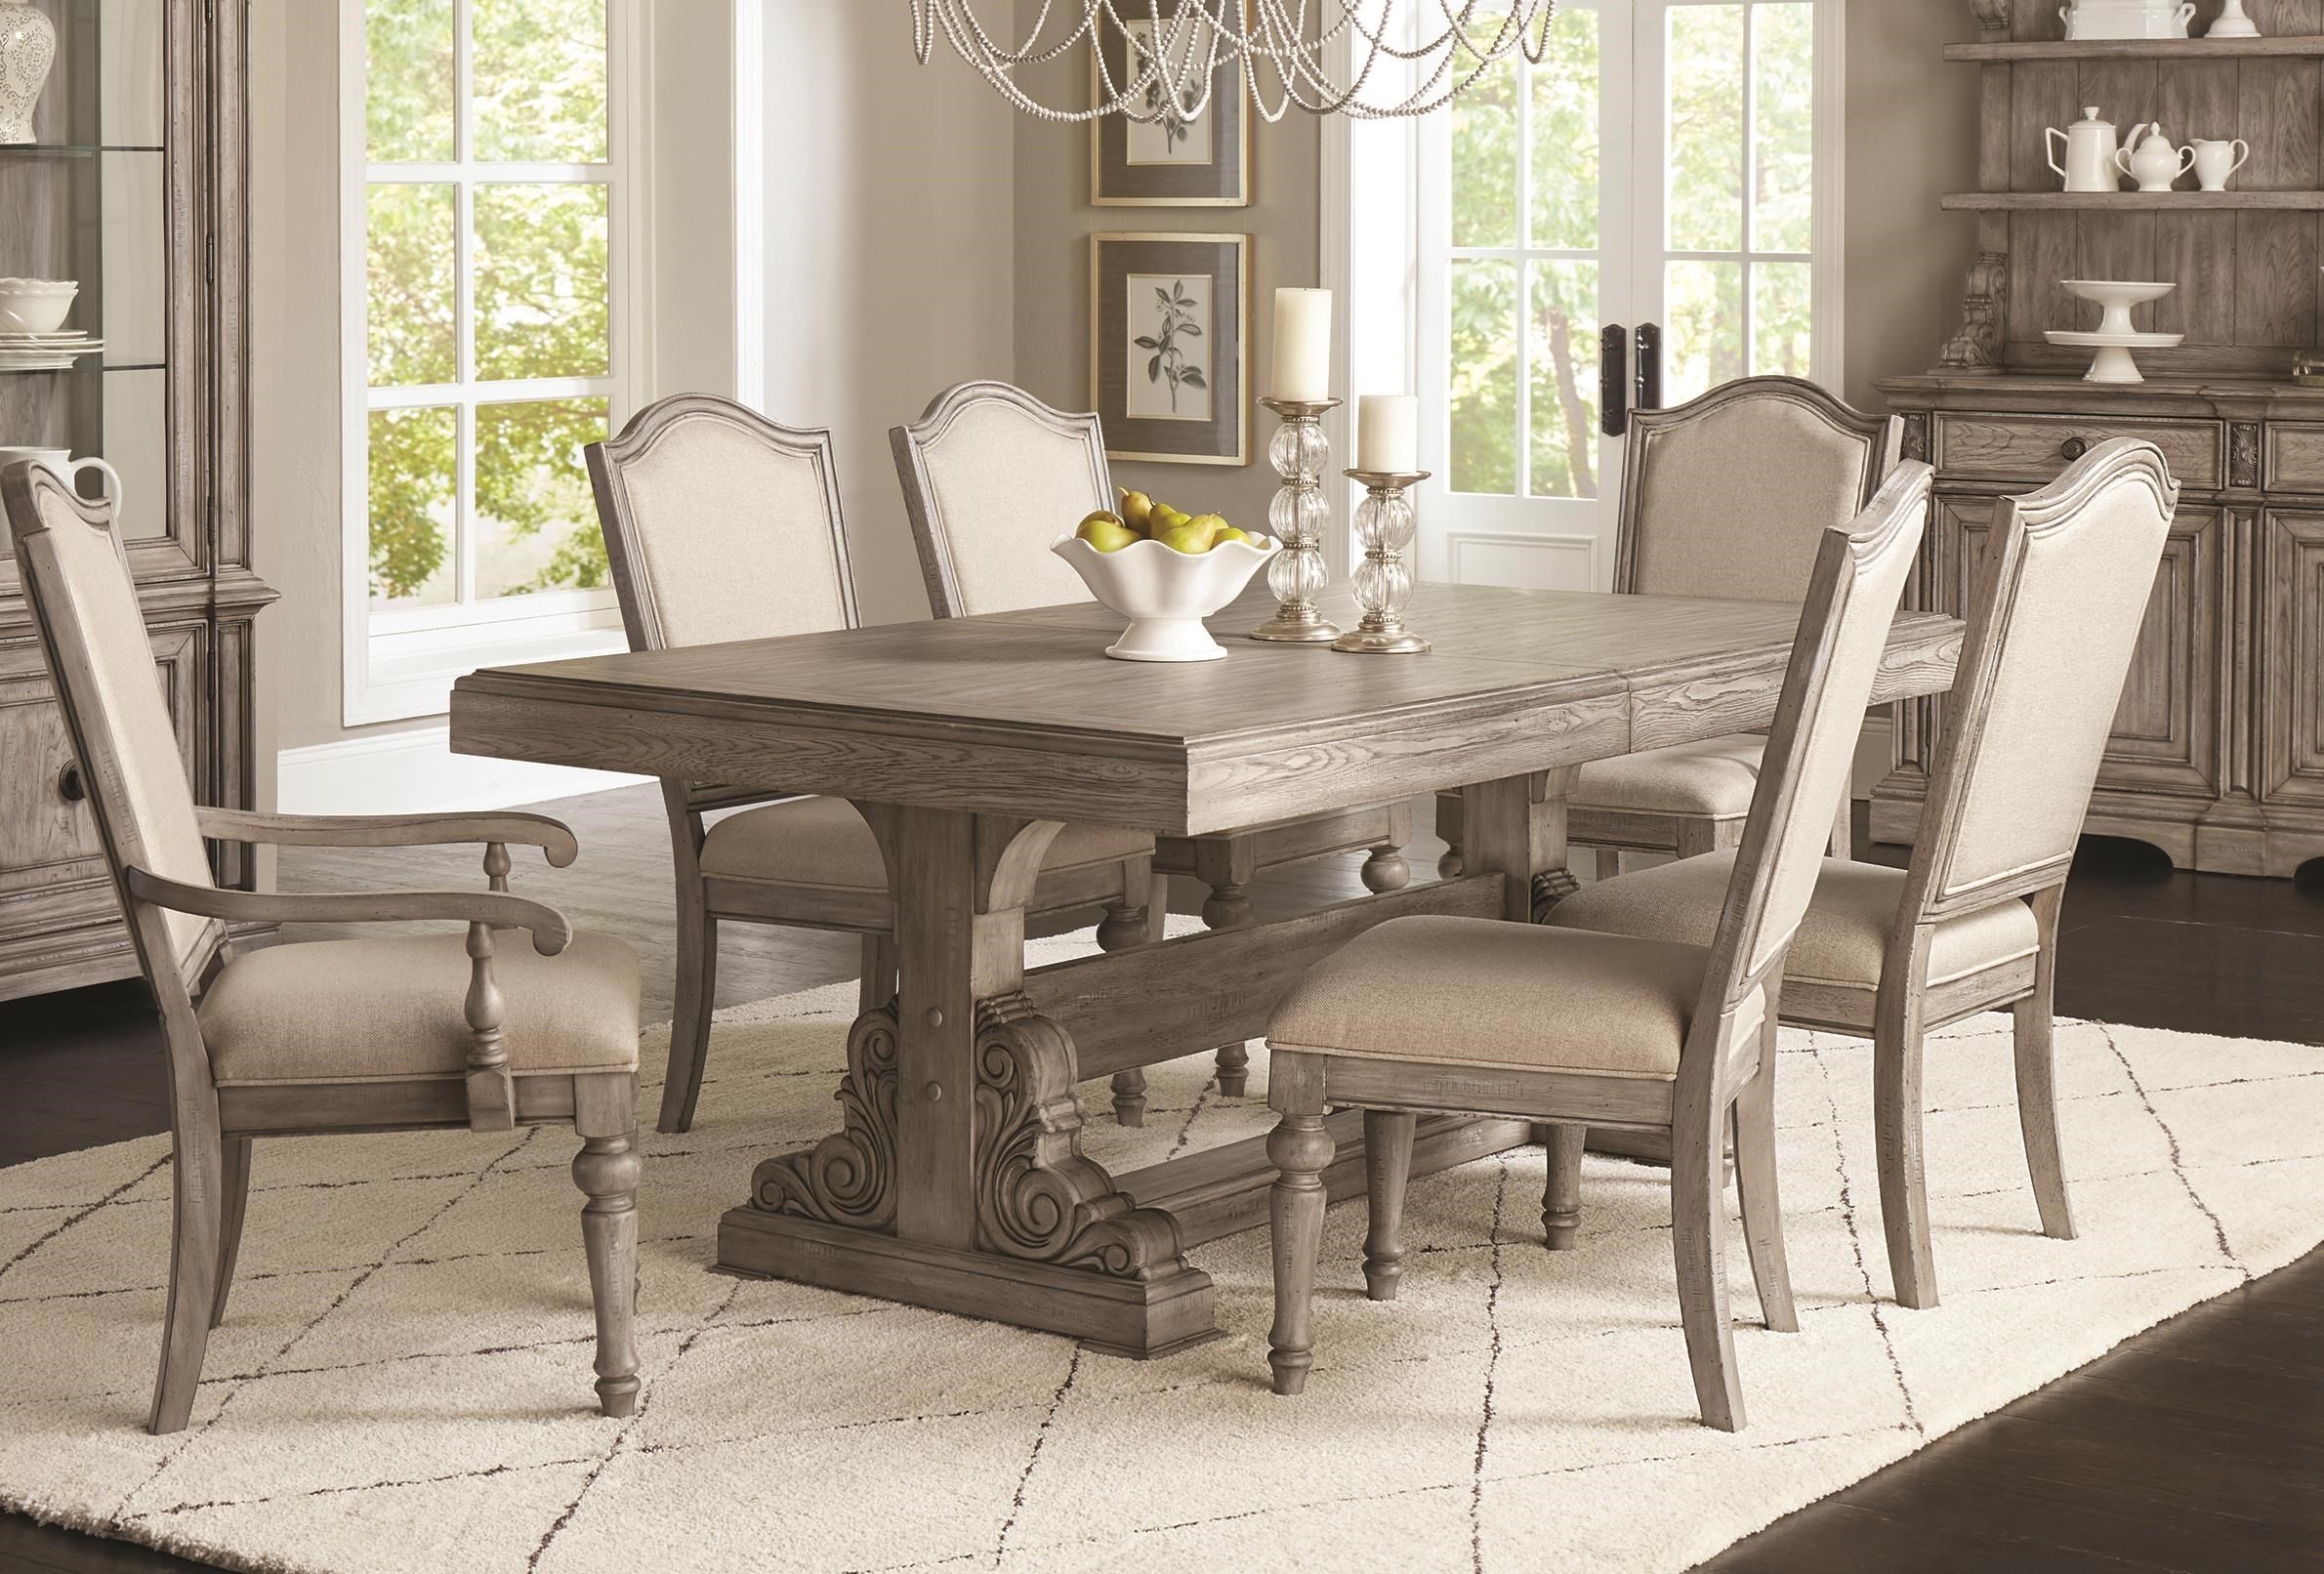 Windmere 5 Piece Dining Set Includes Table And 4 Side by Klaussner International at Darvin Furniture